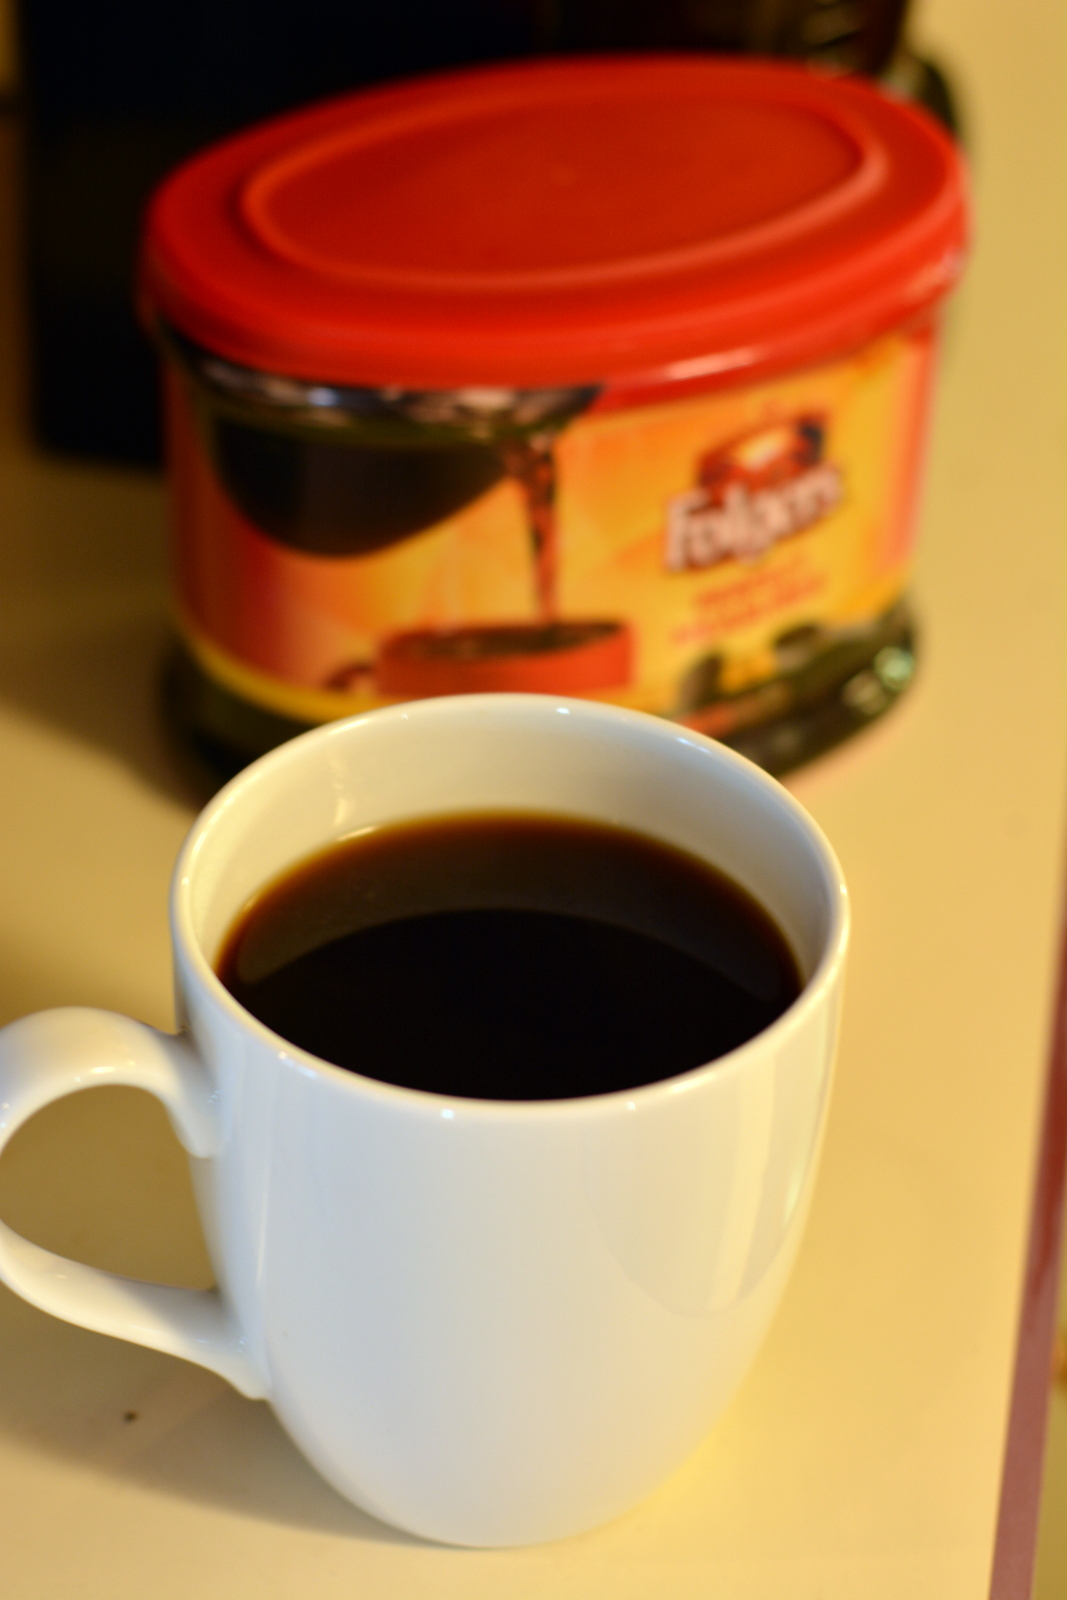 The perfect cup of coffee can start your day off right. Folger Perfect Measures makes sure you have the perfect coffee.